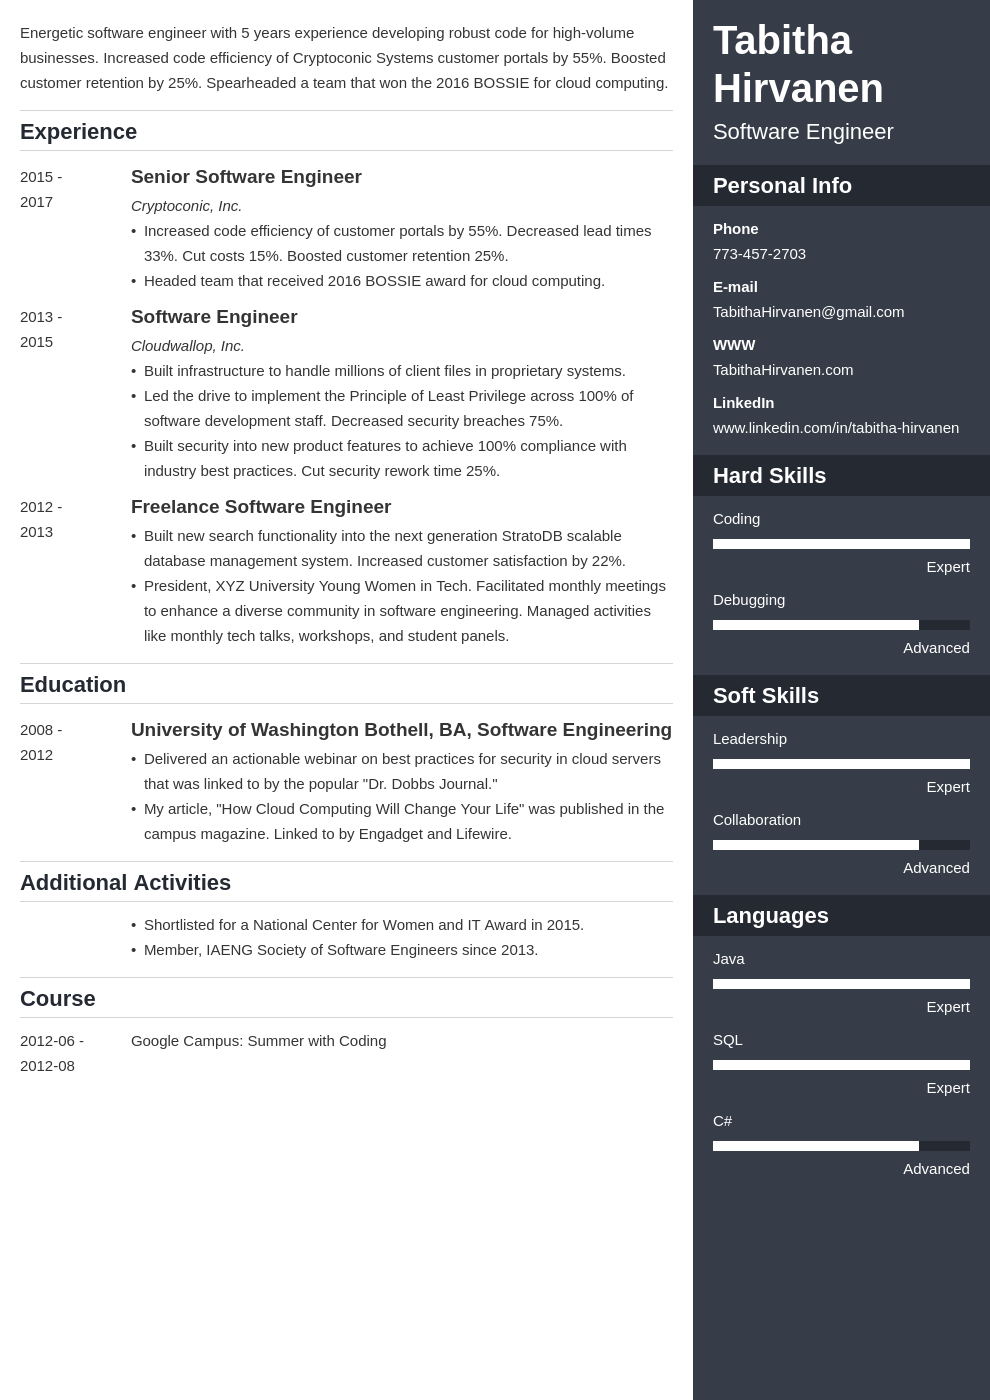 Software Engineer Cv Template from cdn-images.zety.com